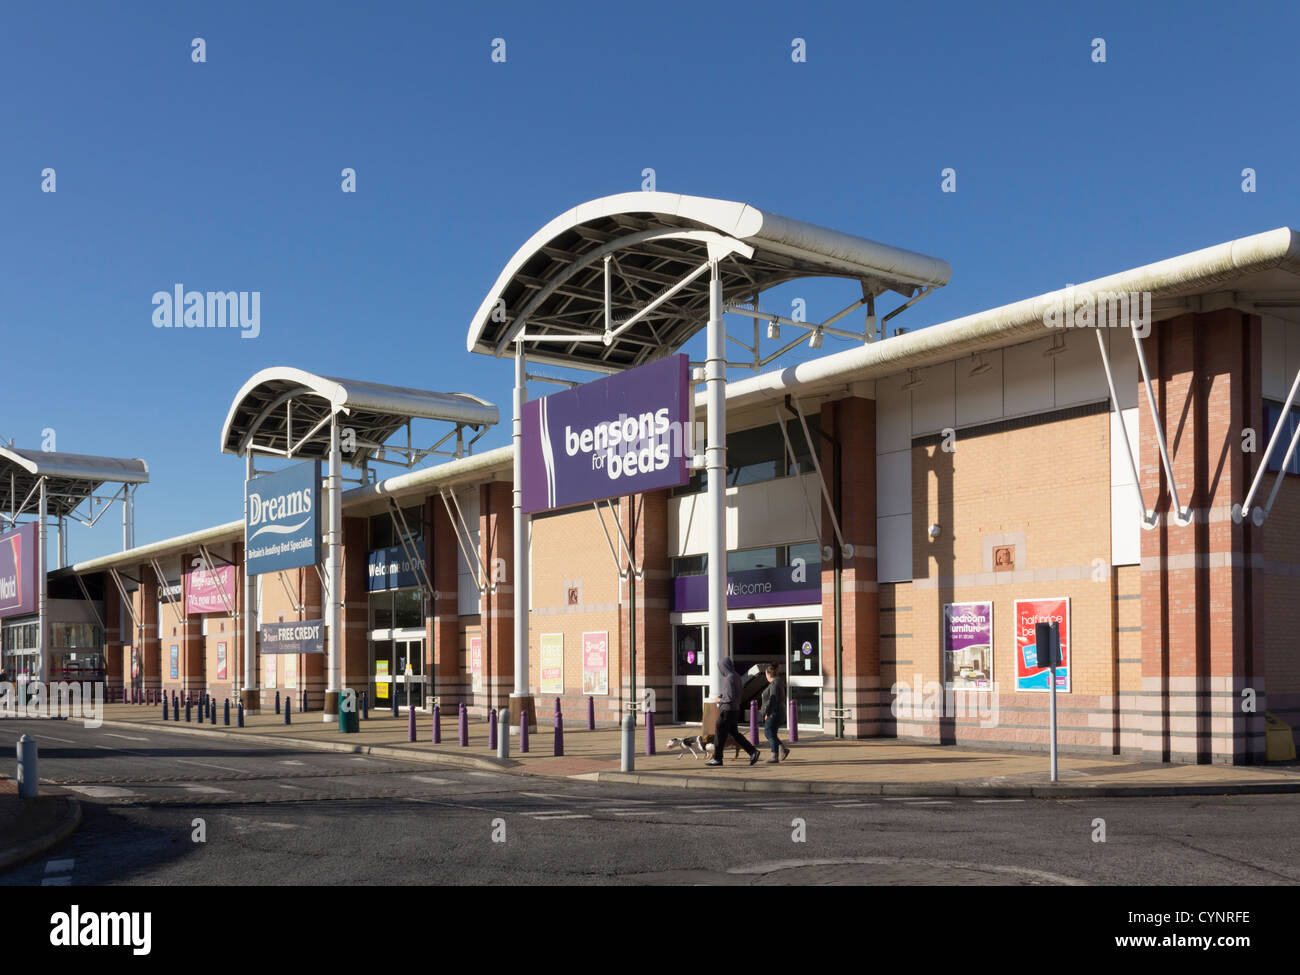 Dreams Beds Northampton Dreams Bed Store Stock Photos Dreams Bed Store Stock Images Alamy